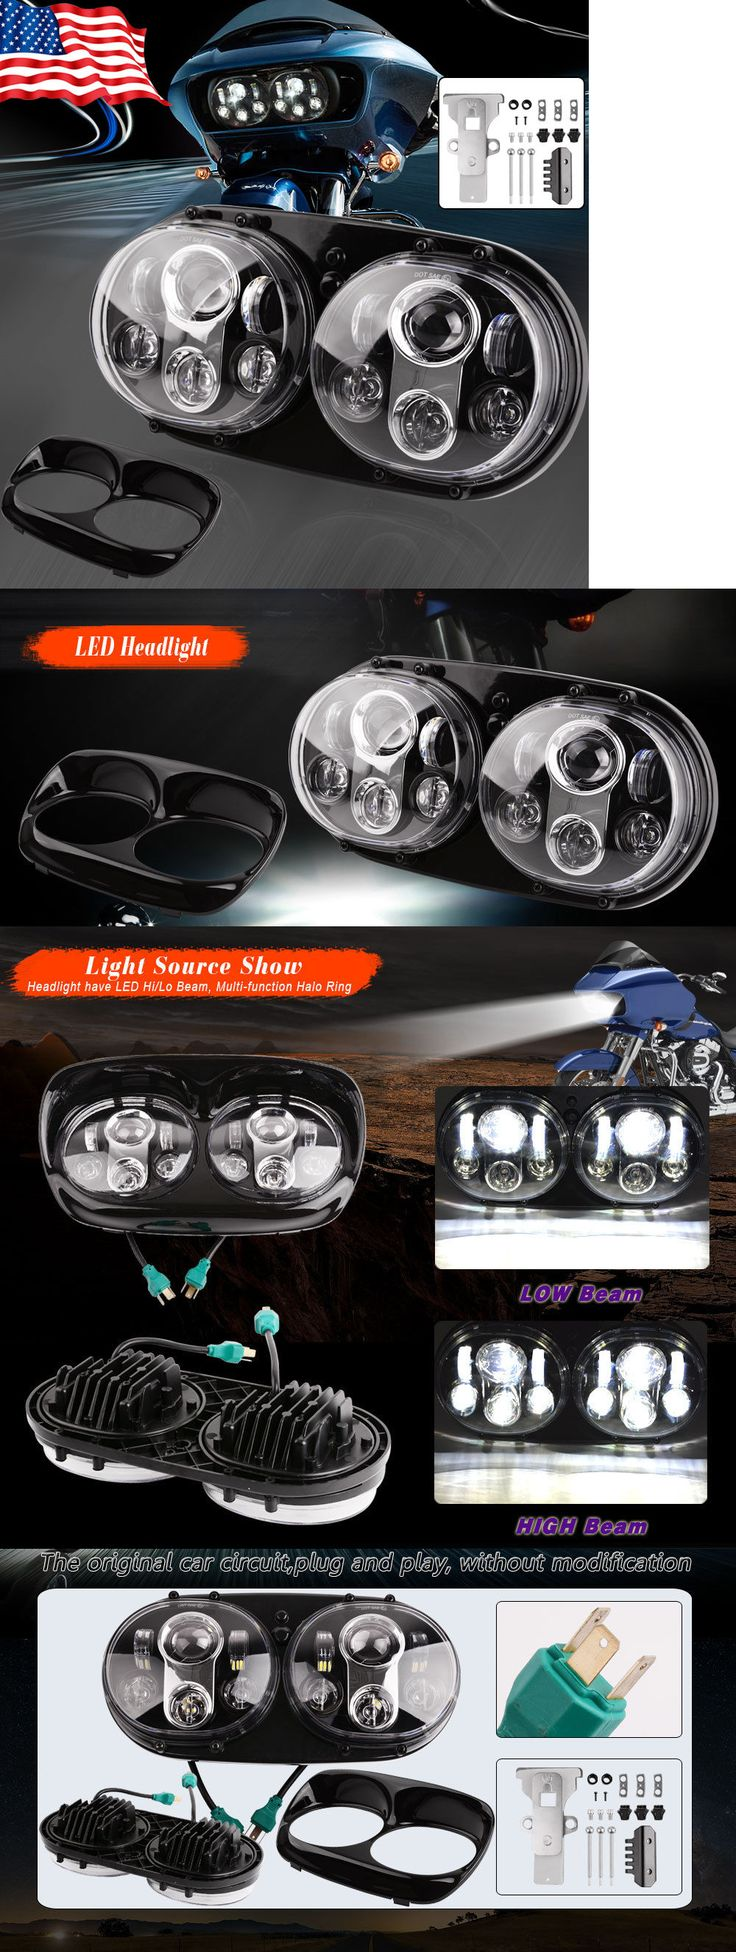 motorcycle parts: 90W Motorcycle Hi Lo Beam Dual Led Headlight For Harley Davidson Road Glide -> BUY IT NOW ONLY: $144.99 on eBay!